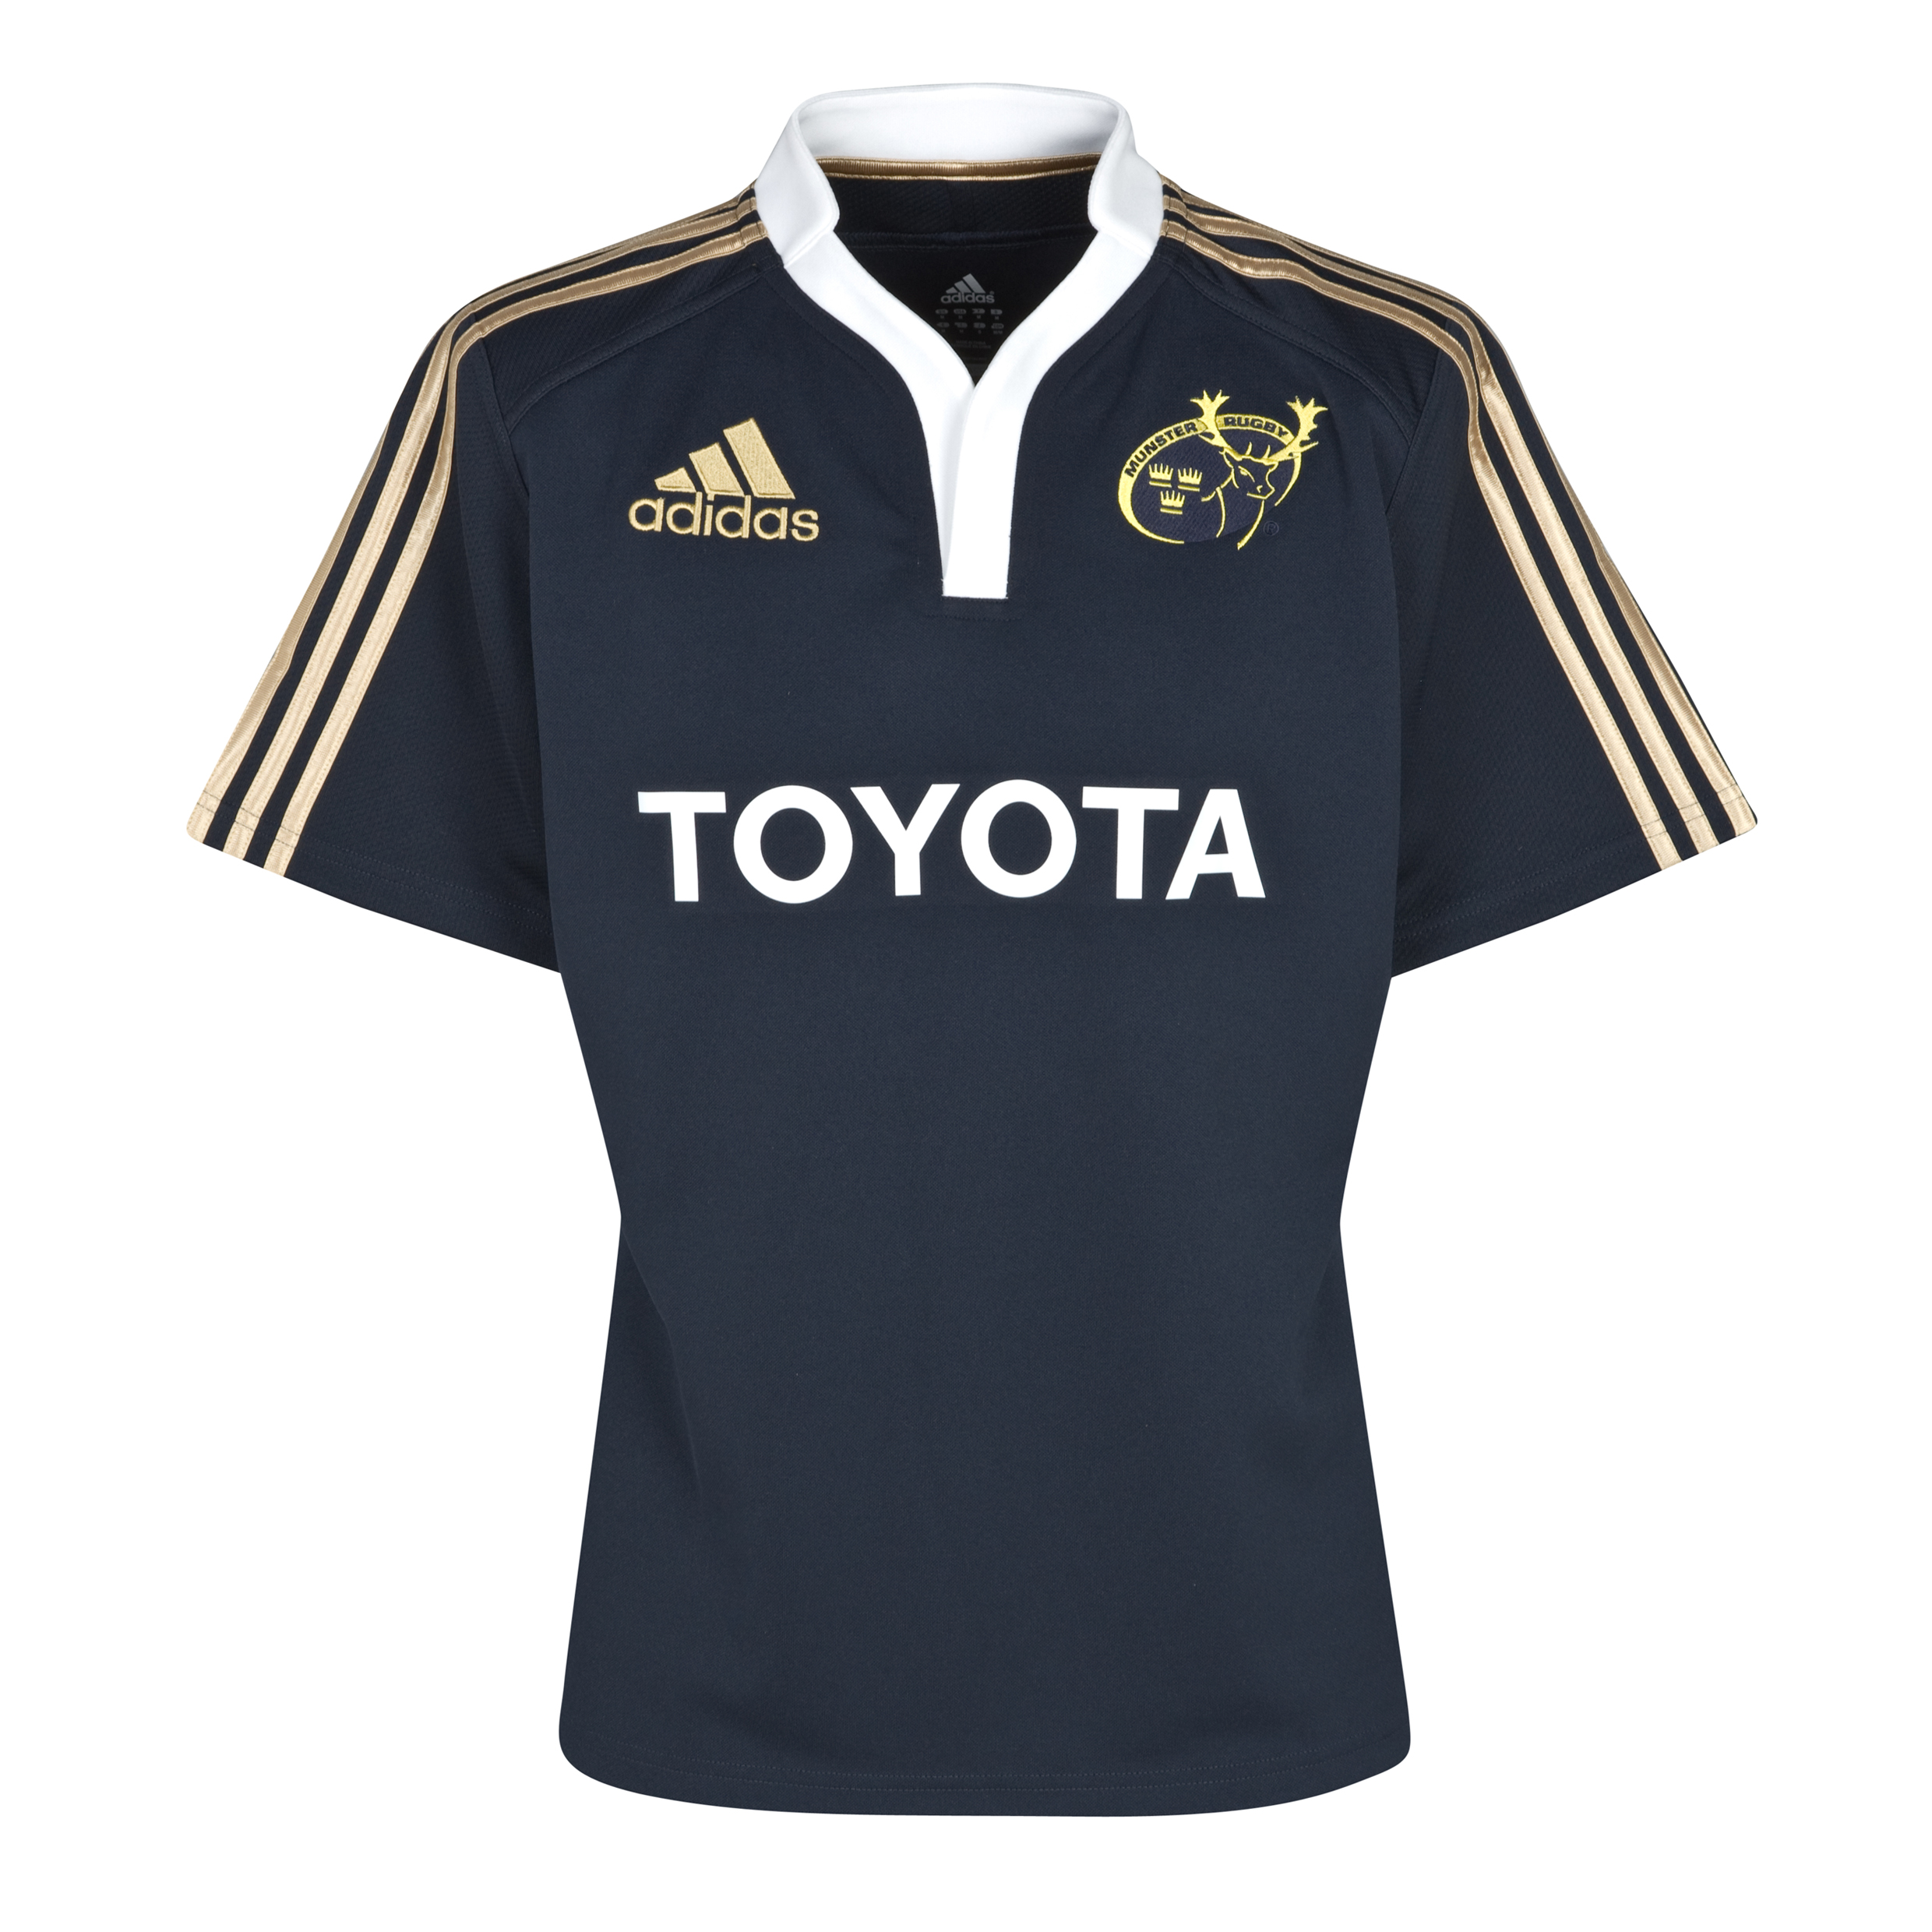 Munster Training Jersey - Dark Navy/White/Met Gold Footb 04